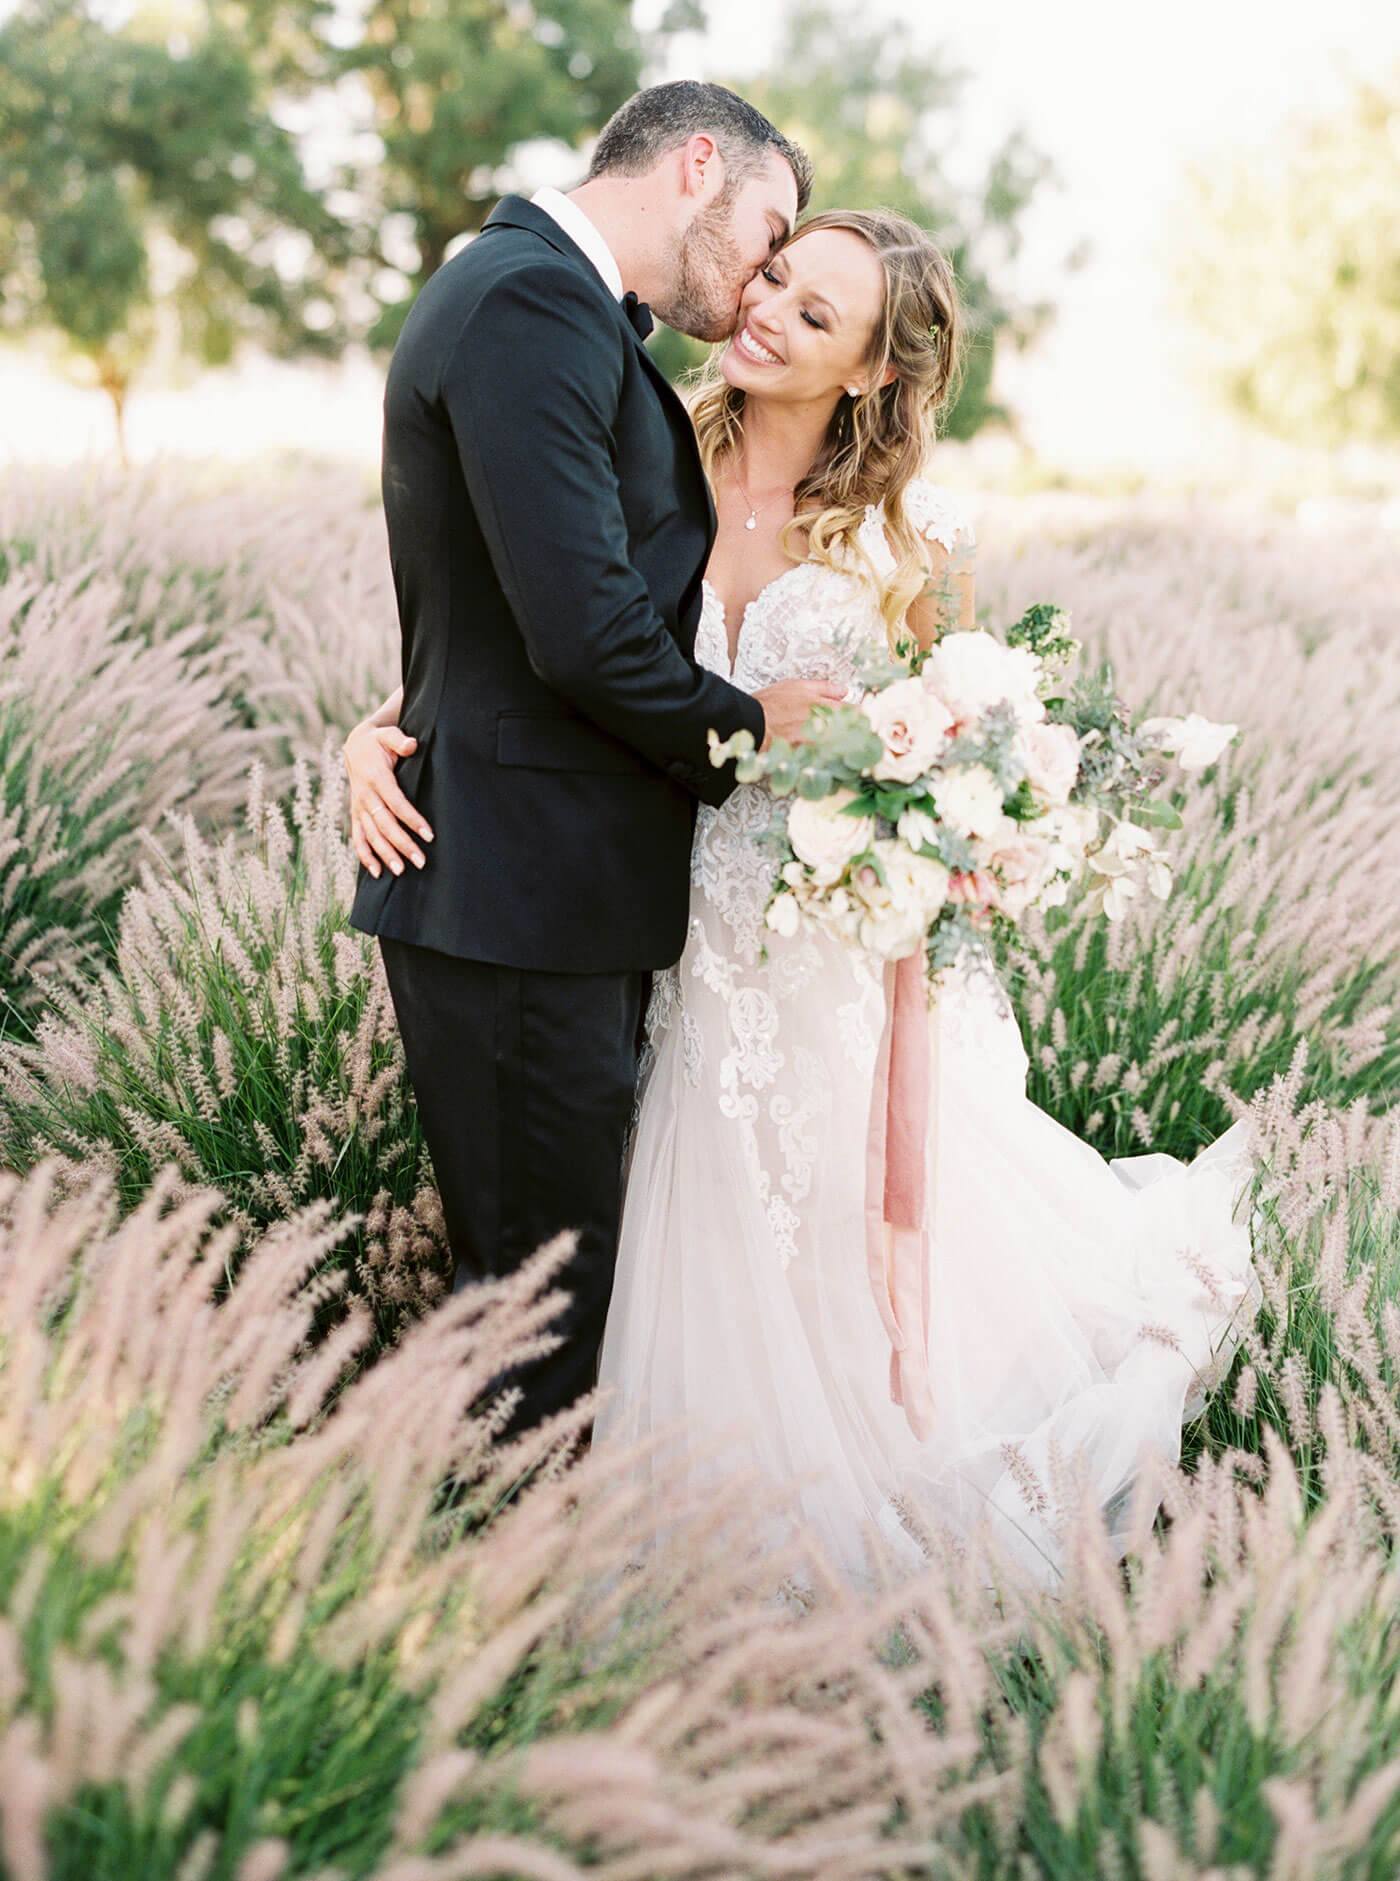 Greengate Ranch Vineyard Organic Wedding A Lovely Creative Ashley Ludaescher San Luis Obispo Wedding Photography